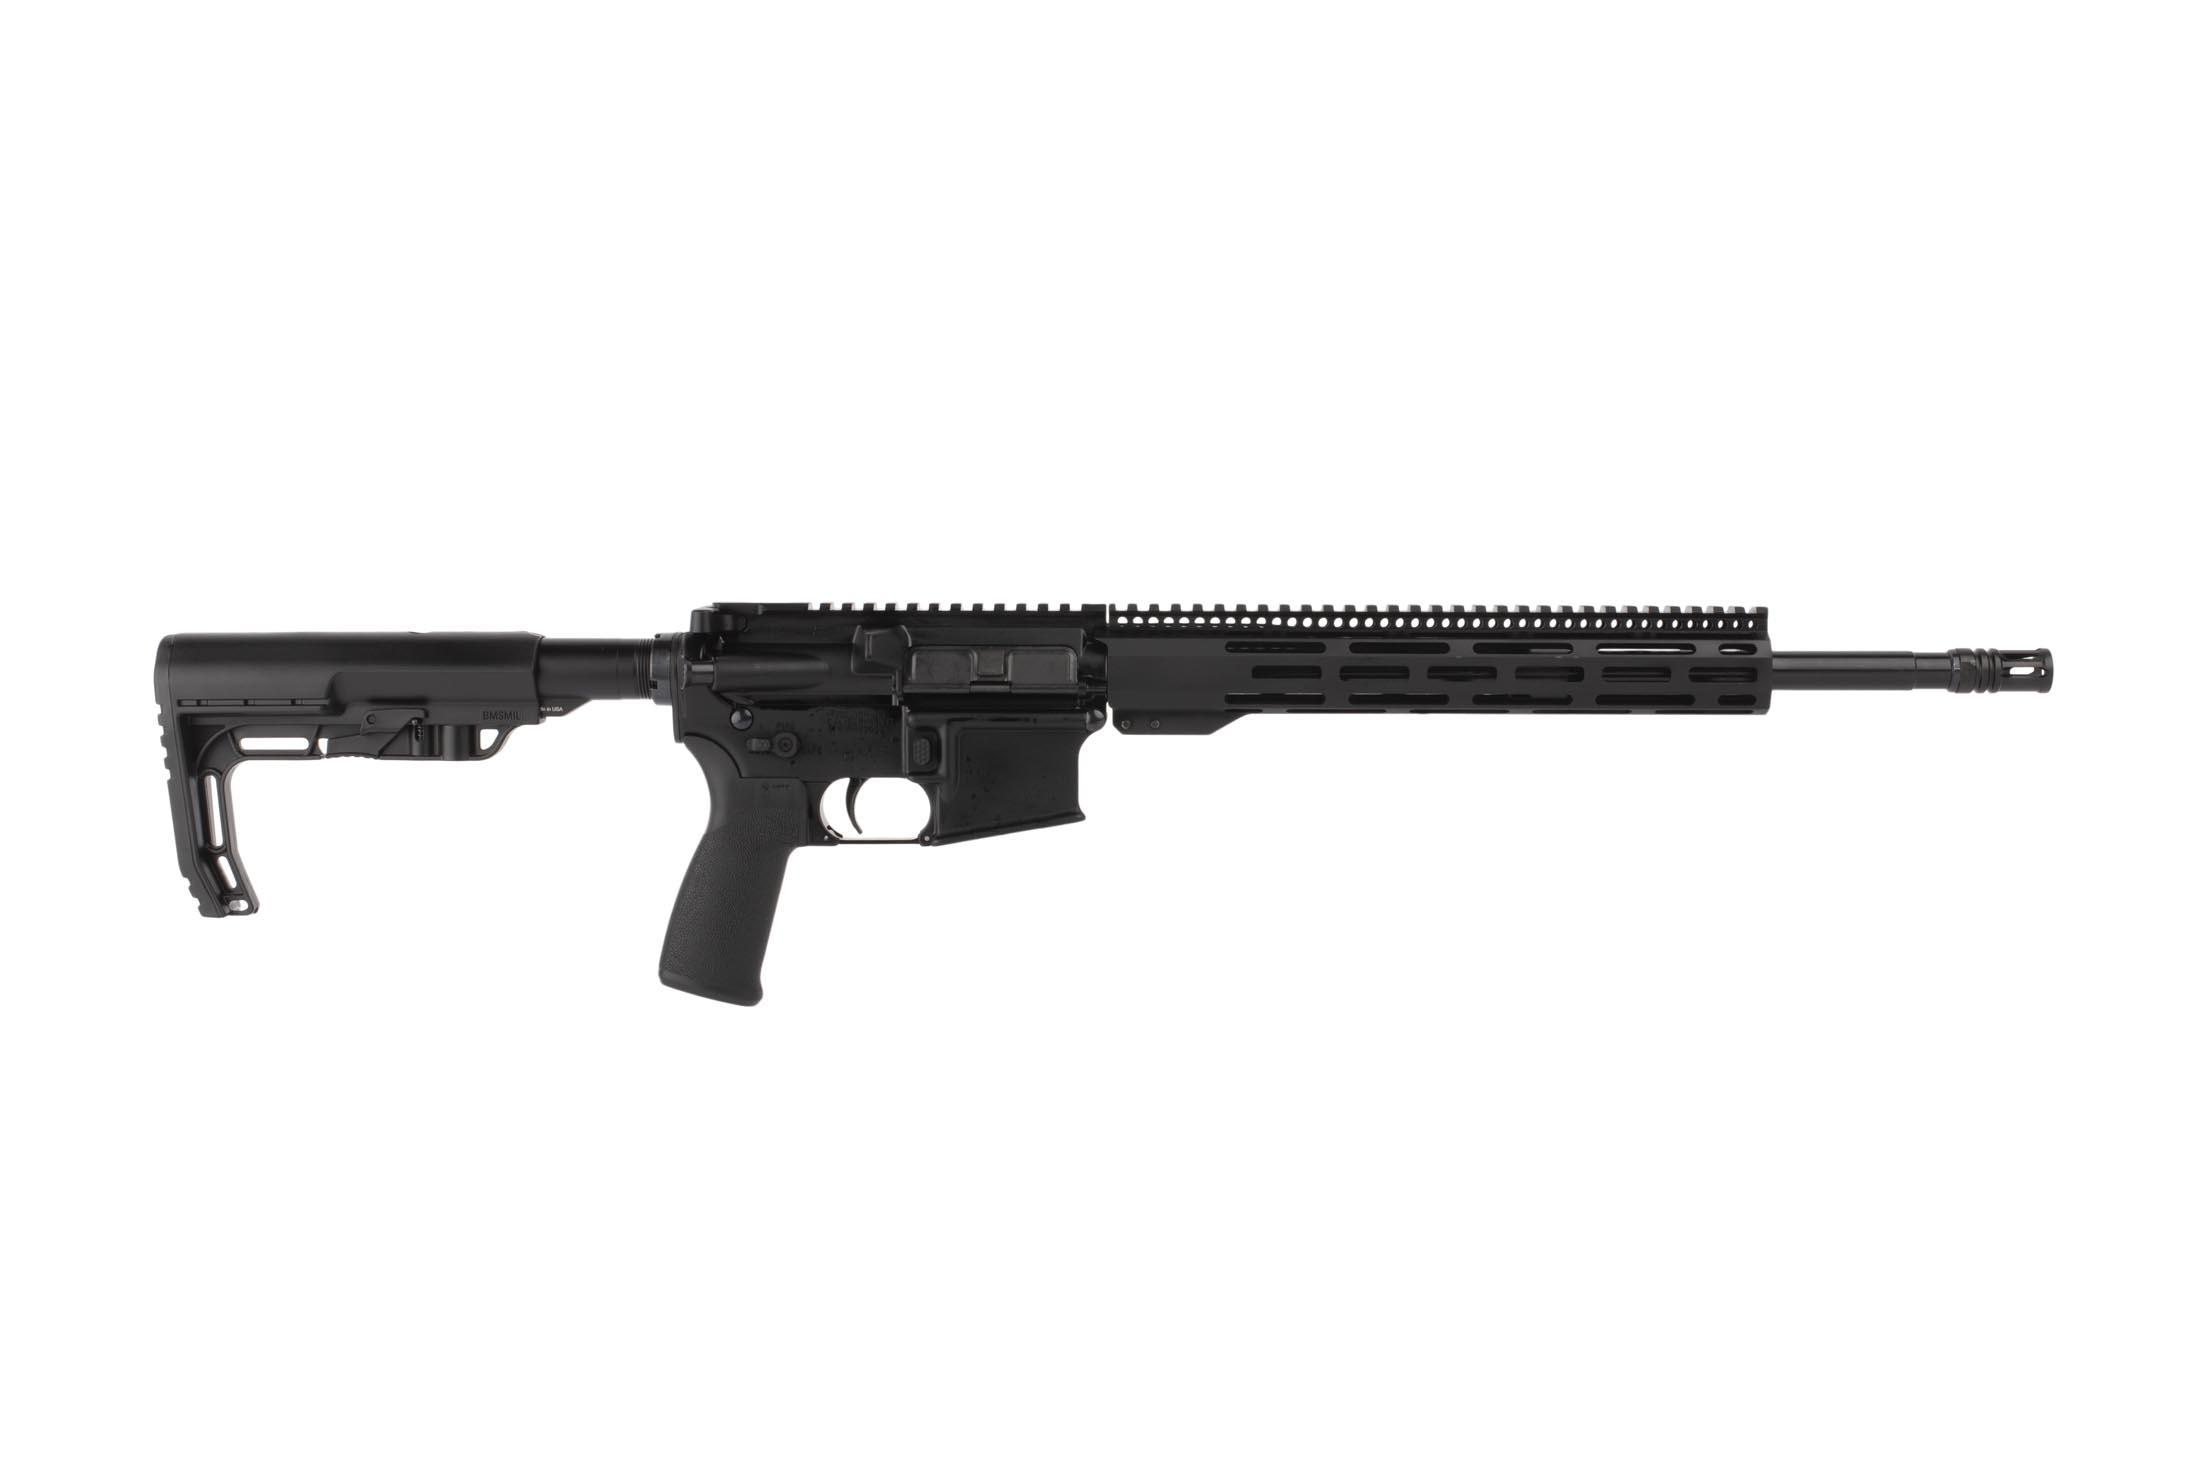 Radical Firearms 16in 7.62x39mm AR15 features a reliable carbine length gas system